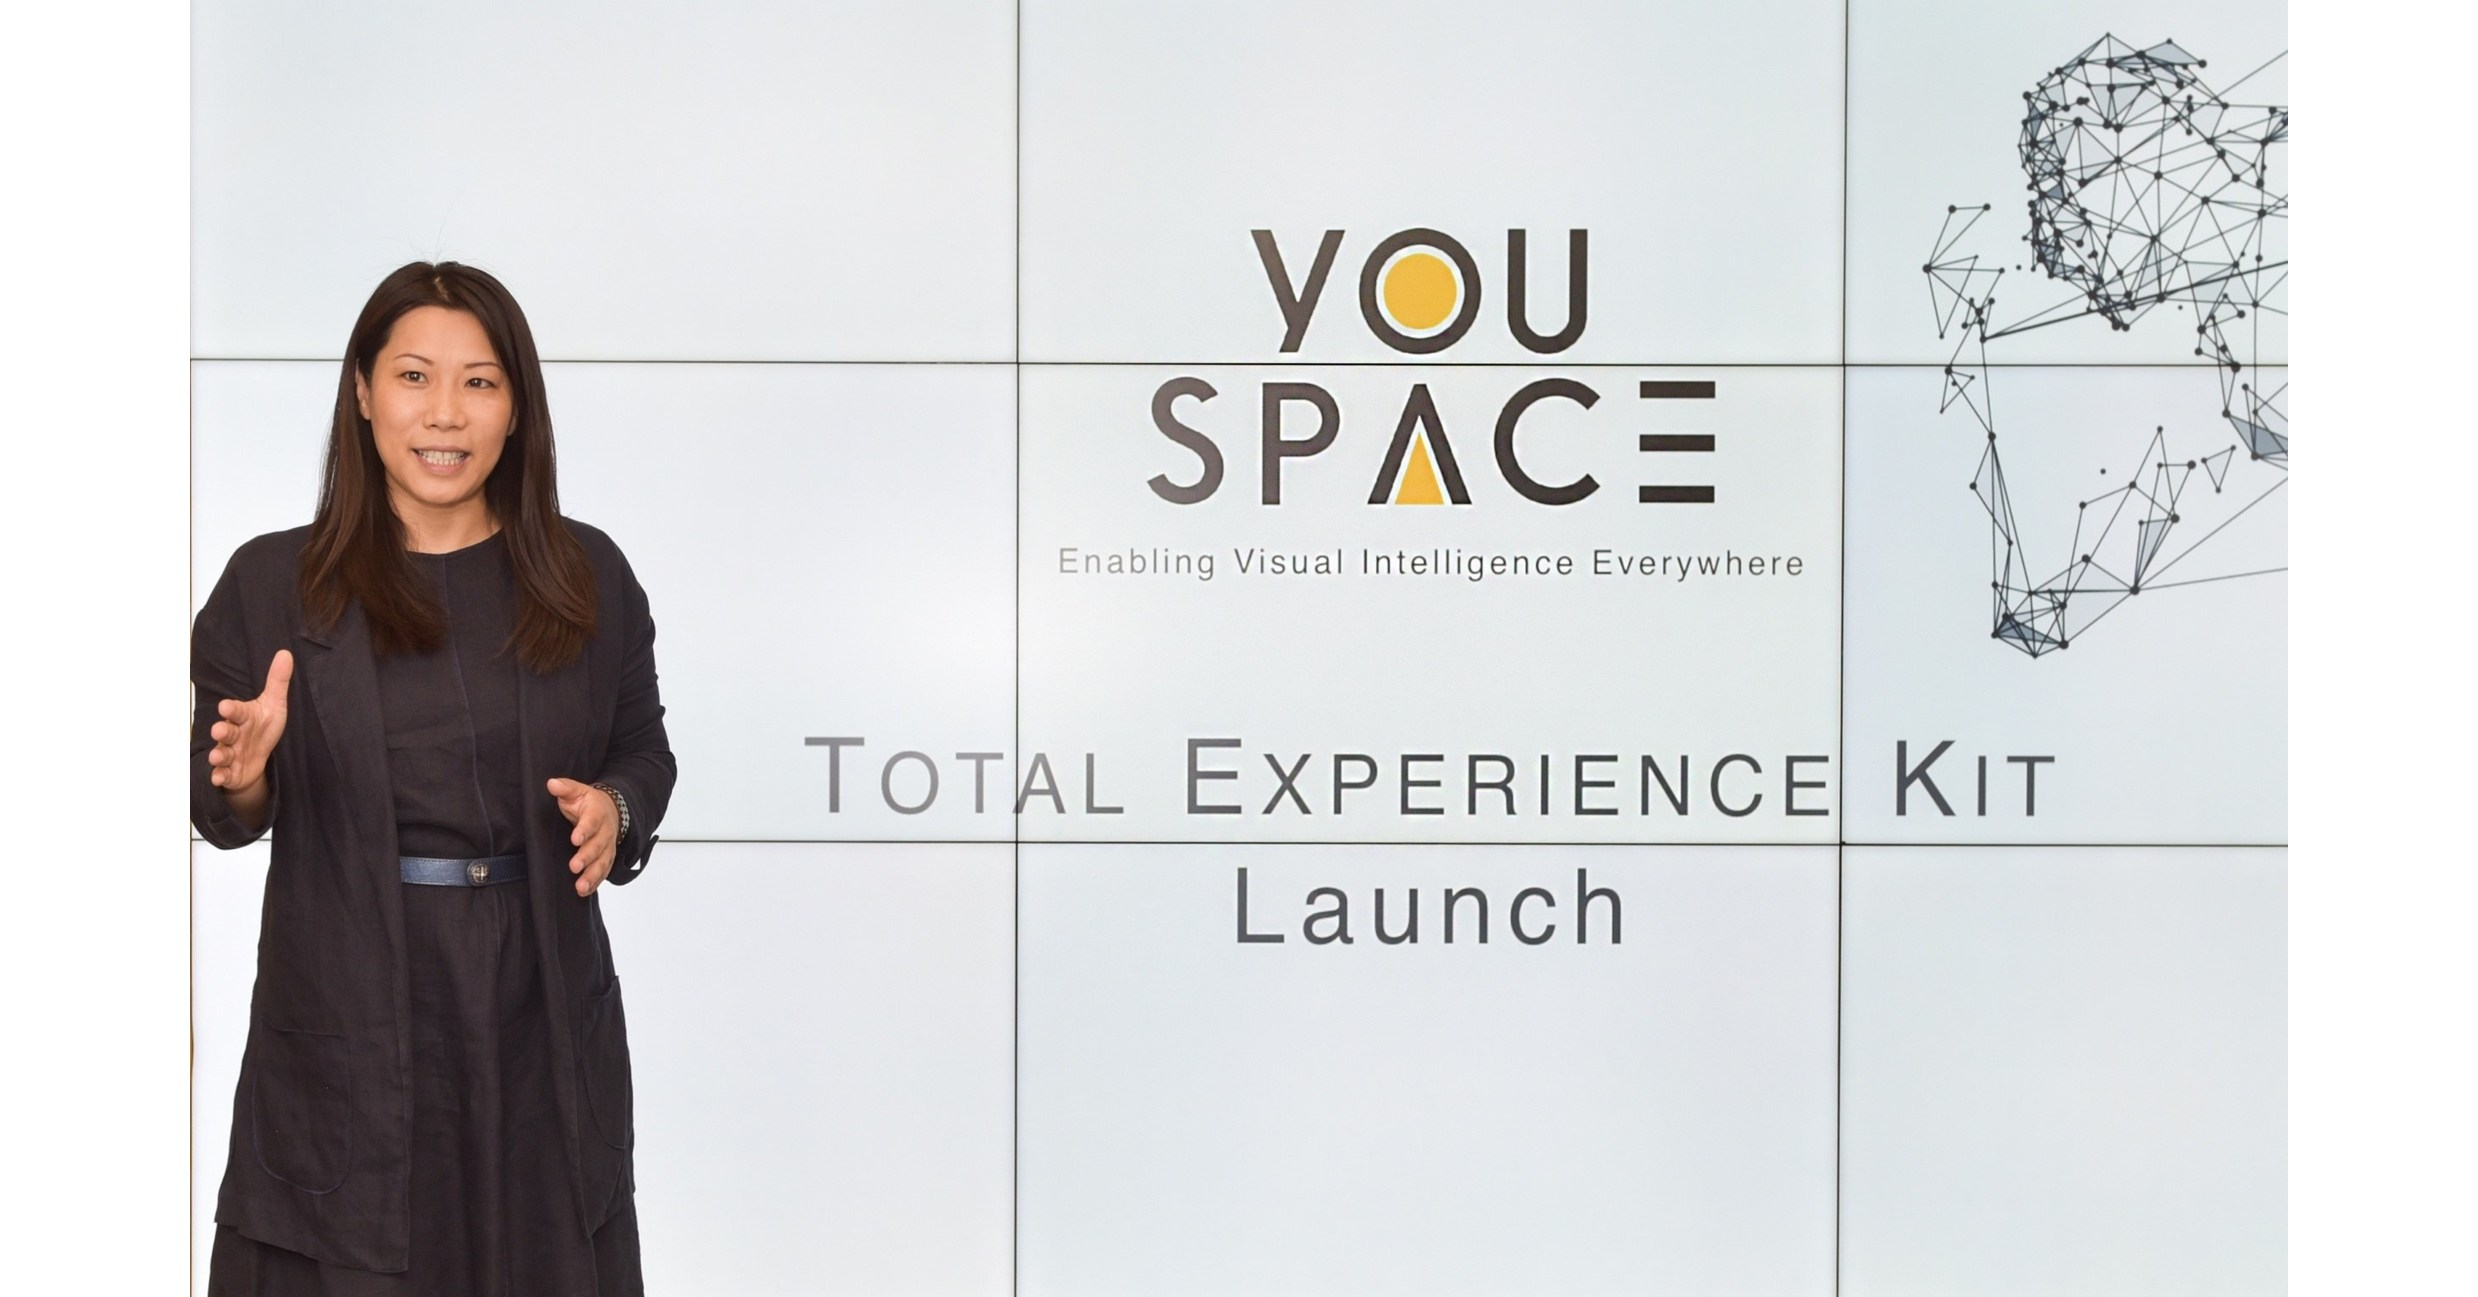 YouSpace launches its Total Experience Kit, merging human recognition AI with interactive content in retail displays